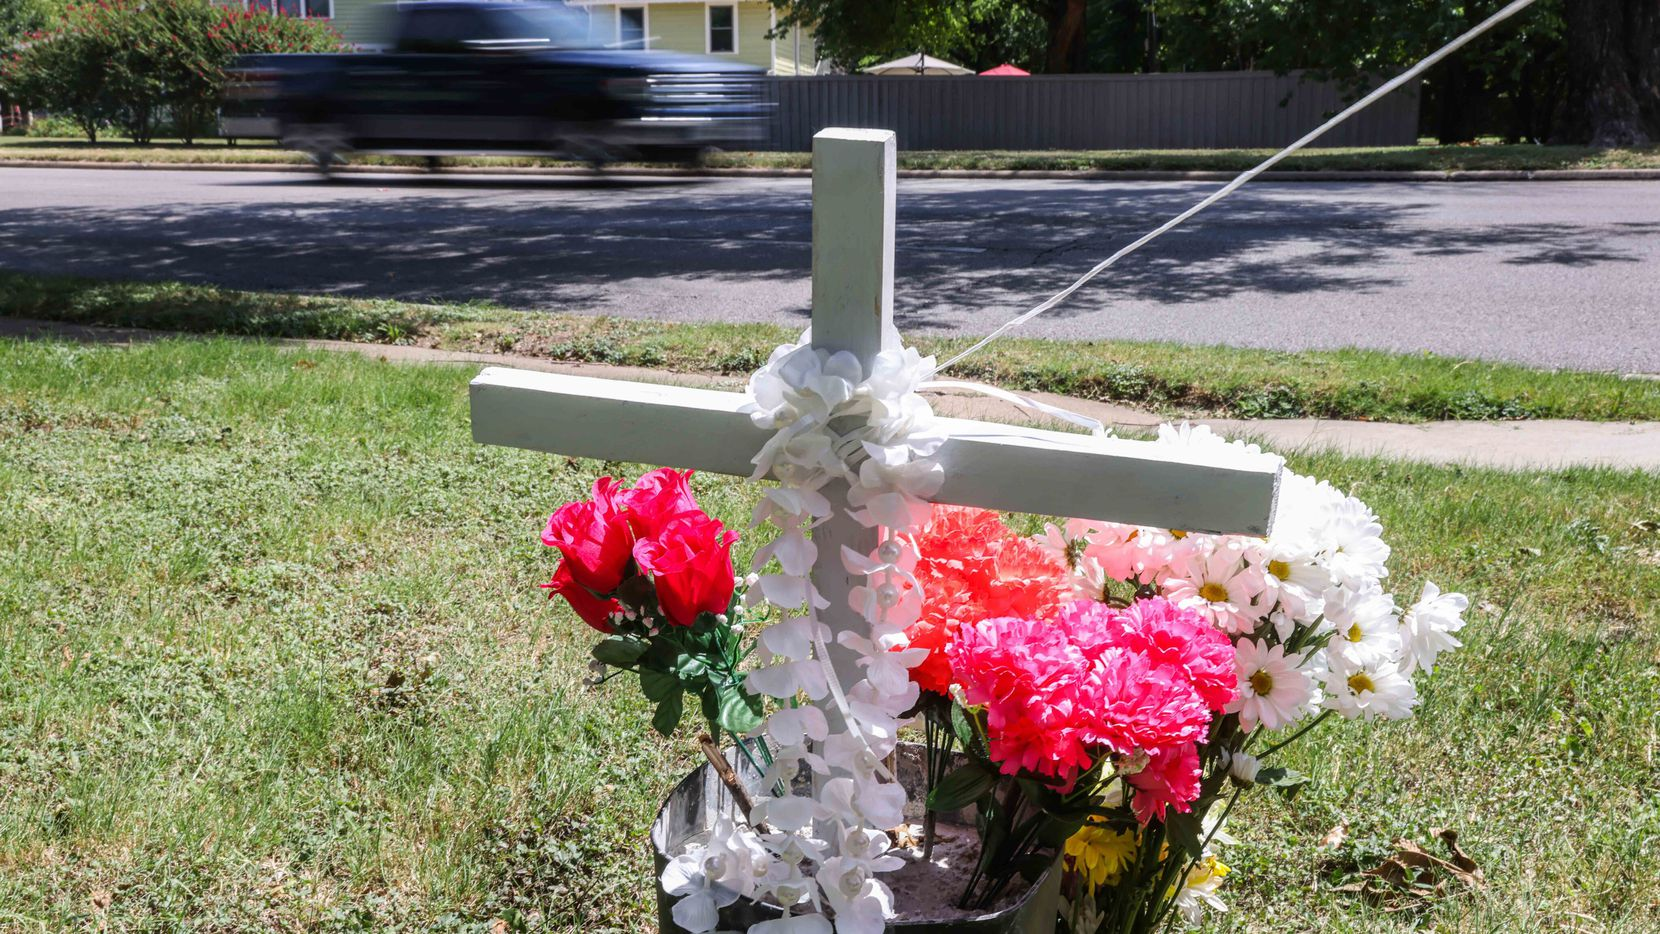 A makeshift memorial honoring Armando Leija near the intersection of West Jefferson Boulevard and Winnetka Avenue in Dallas on Saturday, July 24, 2021. Leija was on a lawnmower cutting grass when he was hit by a car that lost control and went off the road.